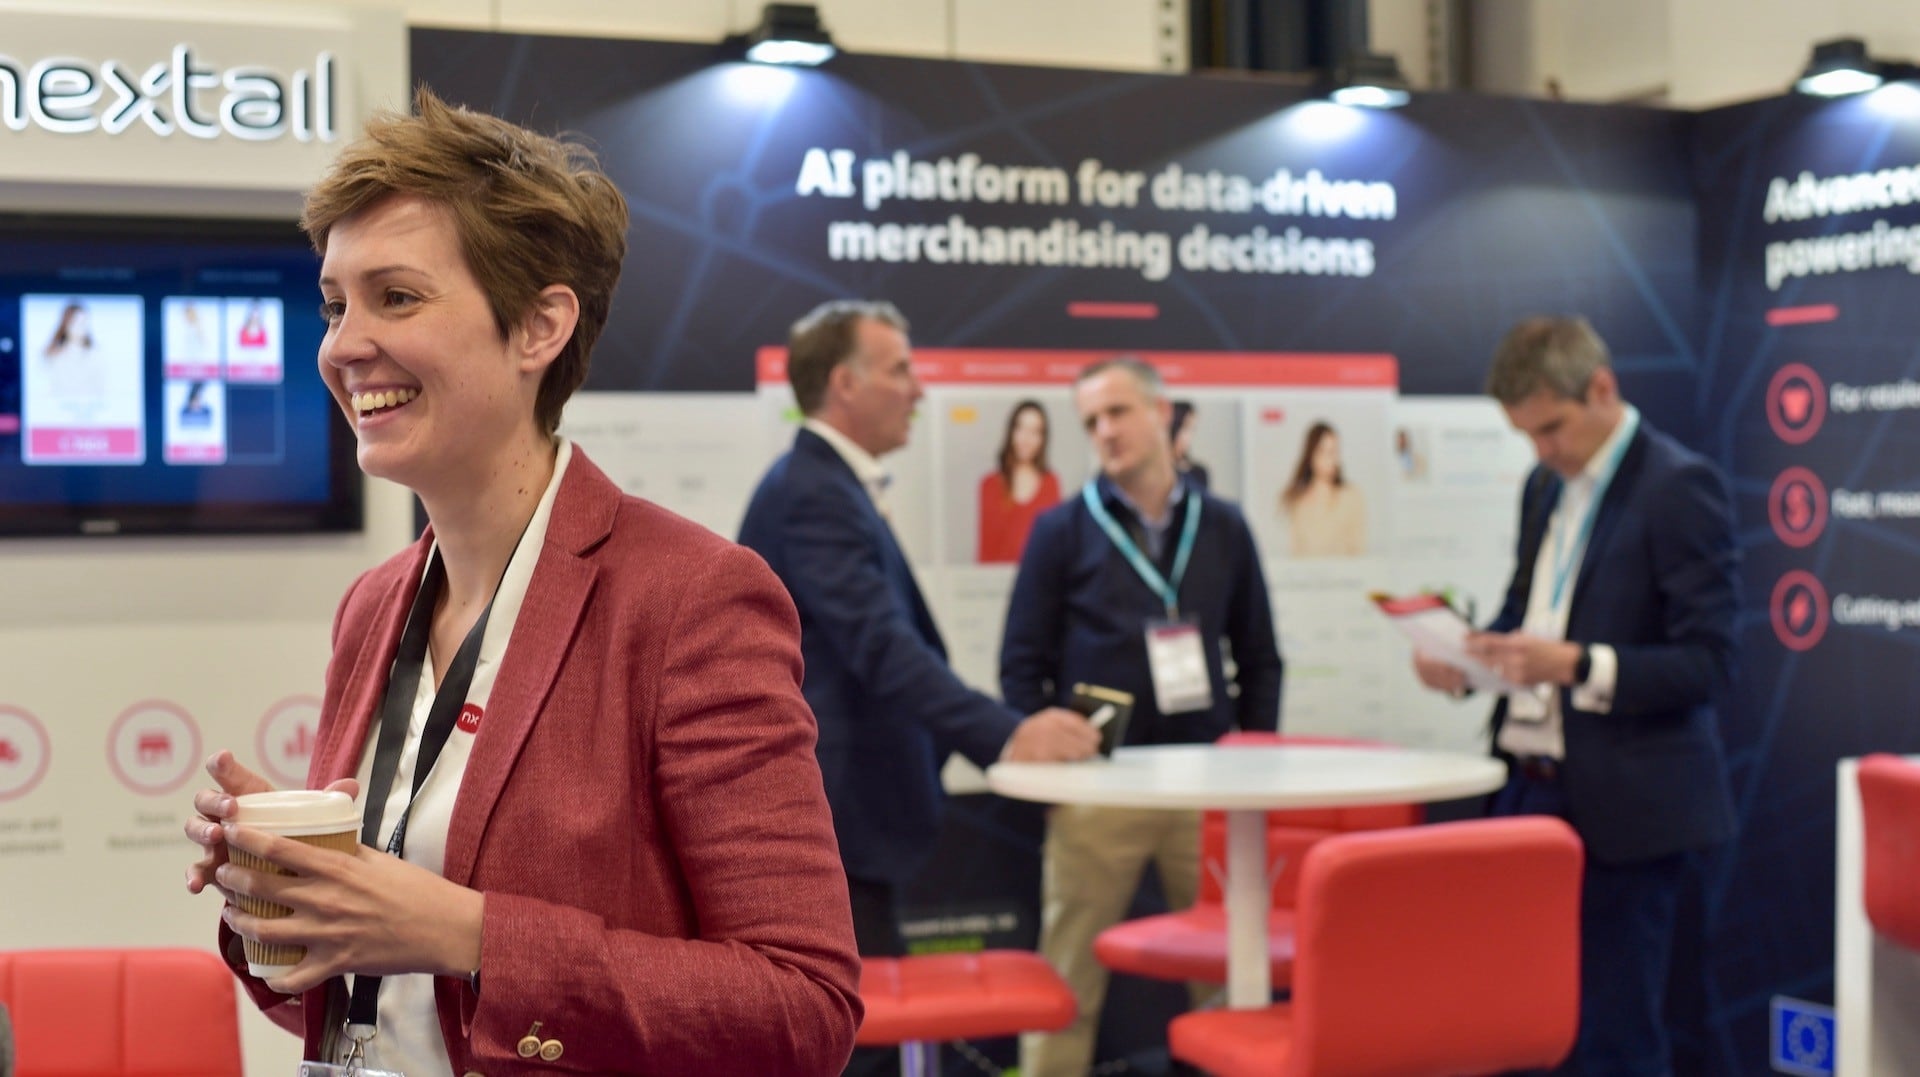 Top 3 Insights from RetailEXPO 2019